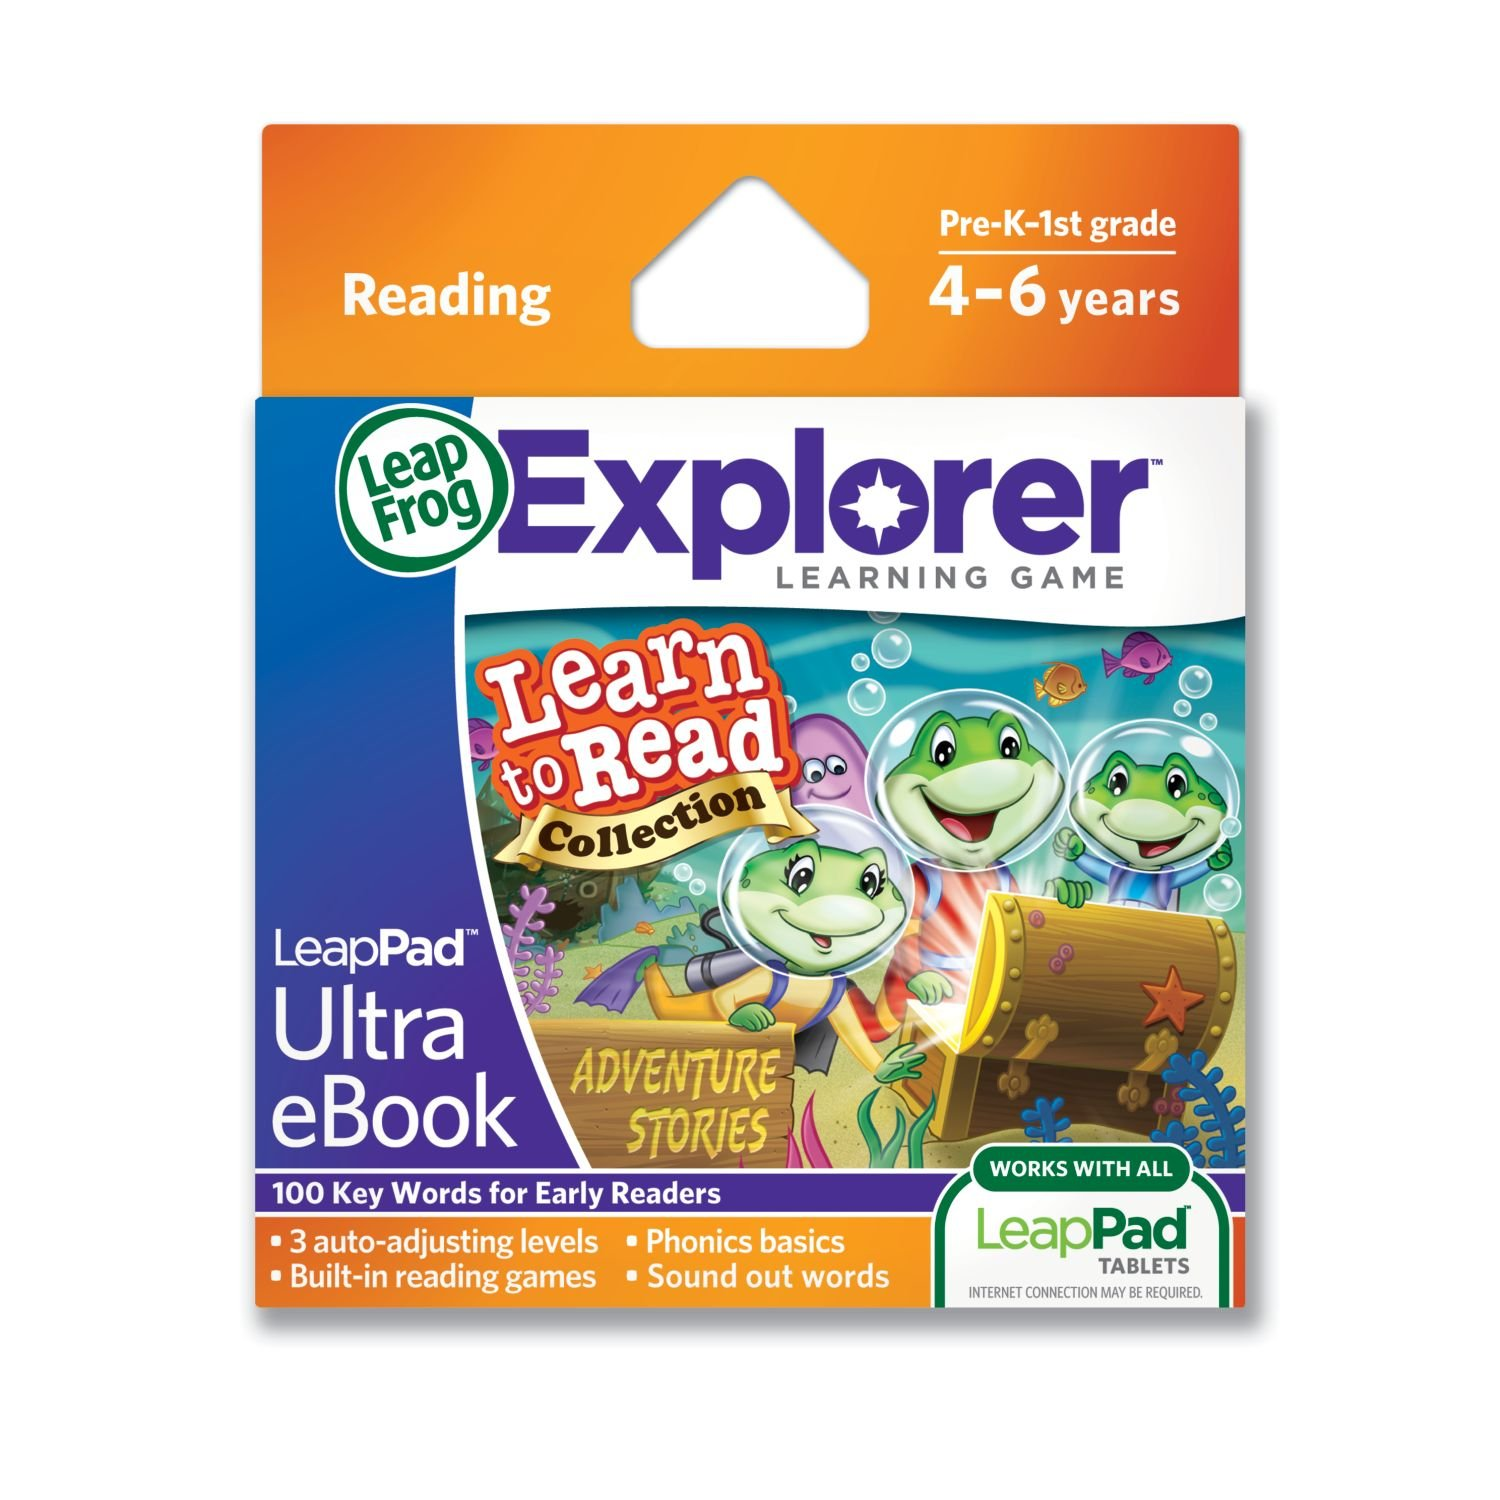 LeapFrog LeapPad Ultra eBook Learn to Read Collection: Adventure Stories (works with all LeapPad tablets) by LeapFrog